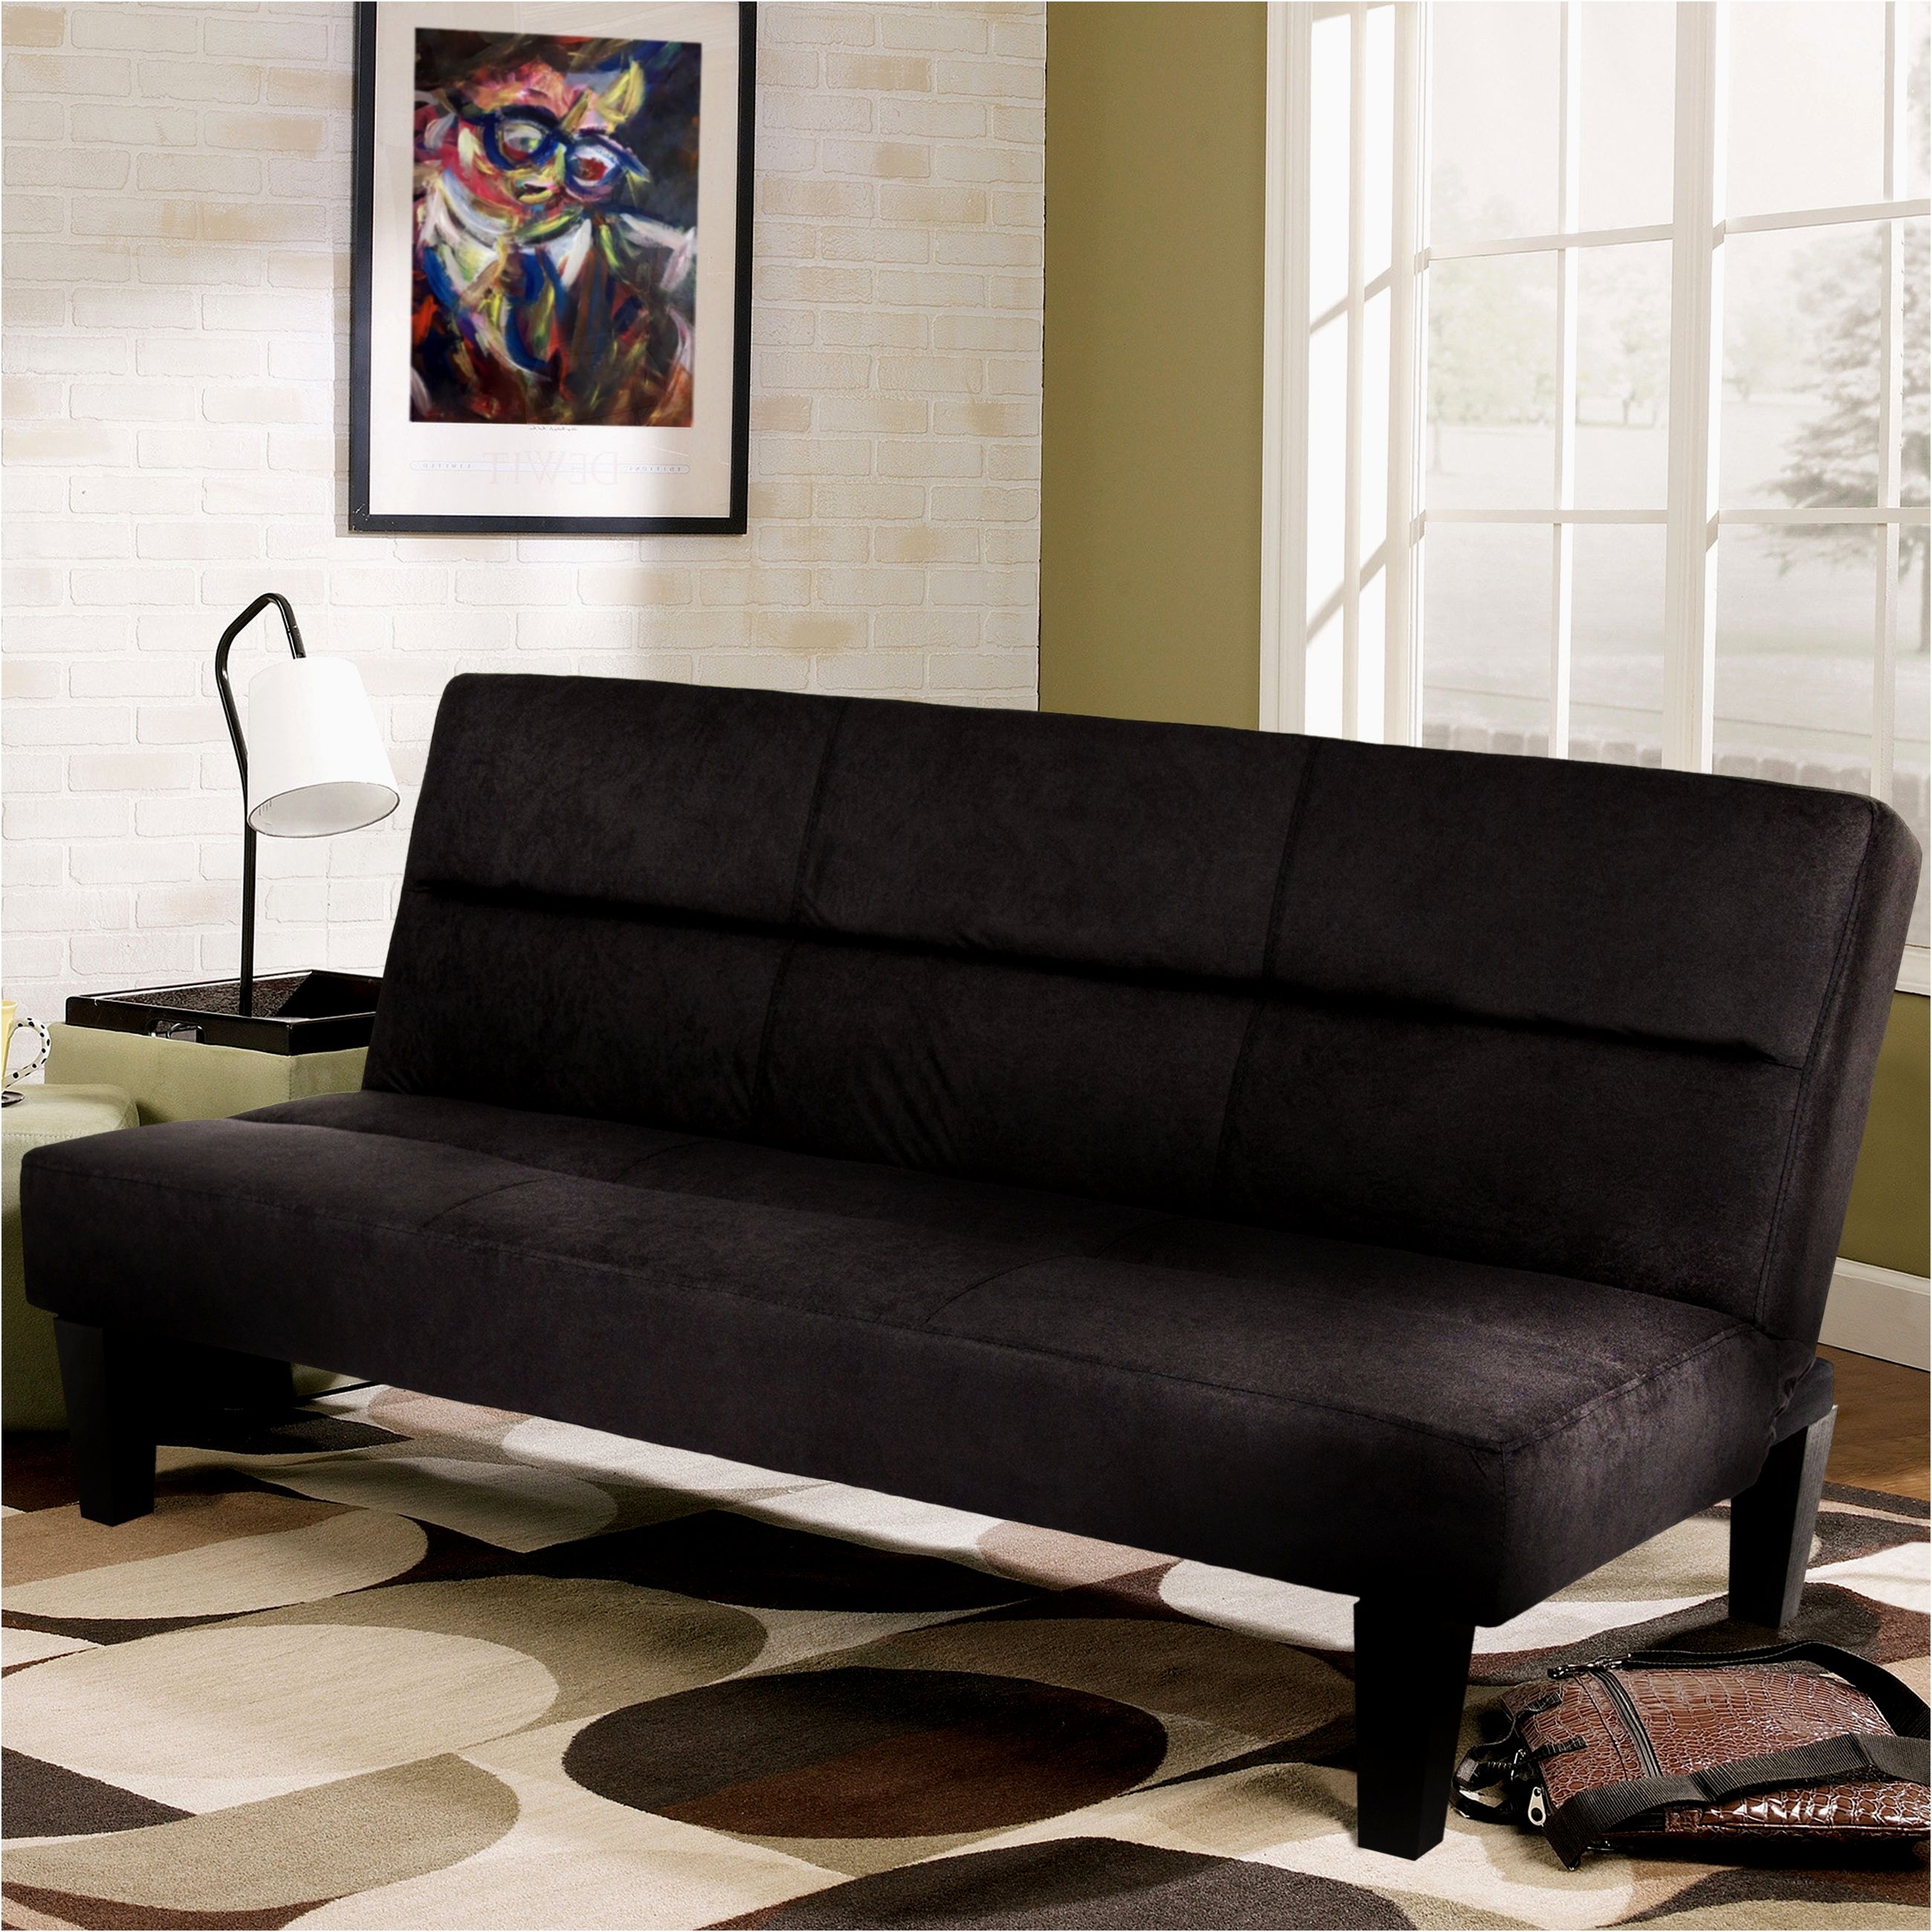 fresh world market sofa bed photograph-Excellent World Market sofa Bed Picture